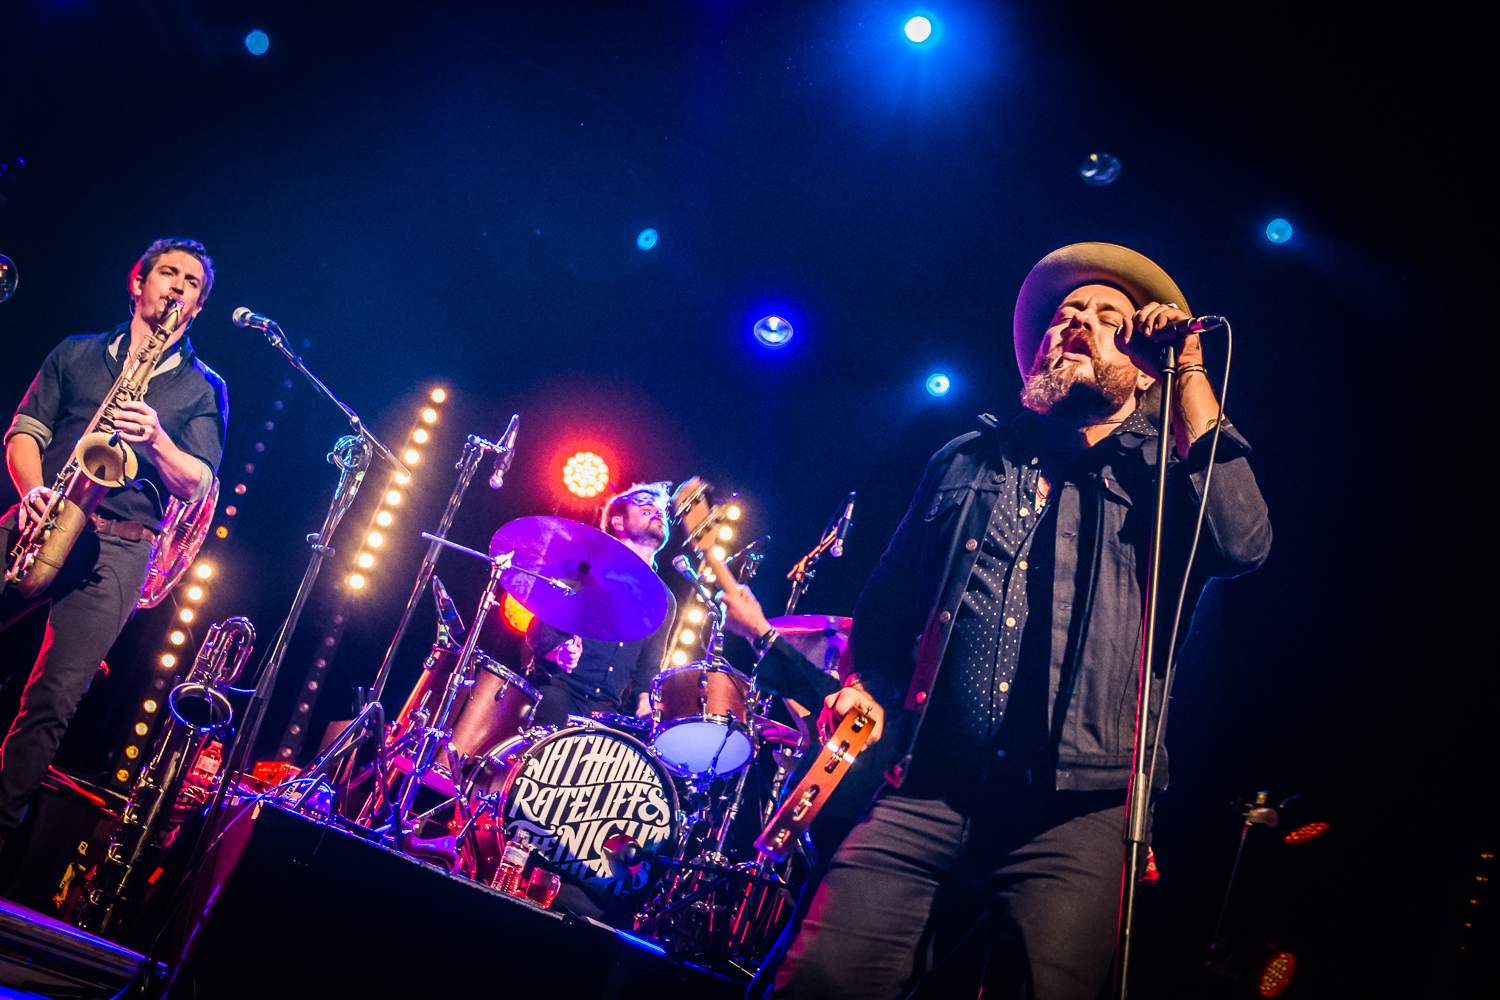 Nathaniel Rateliff And The Night Sweats @ Ancienne Belgique (© Timmy Haubrechts)